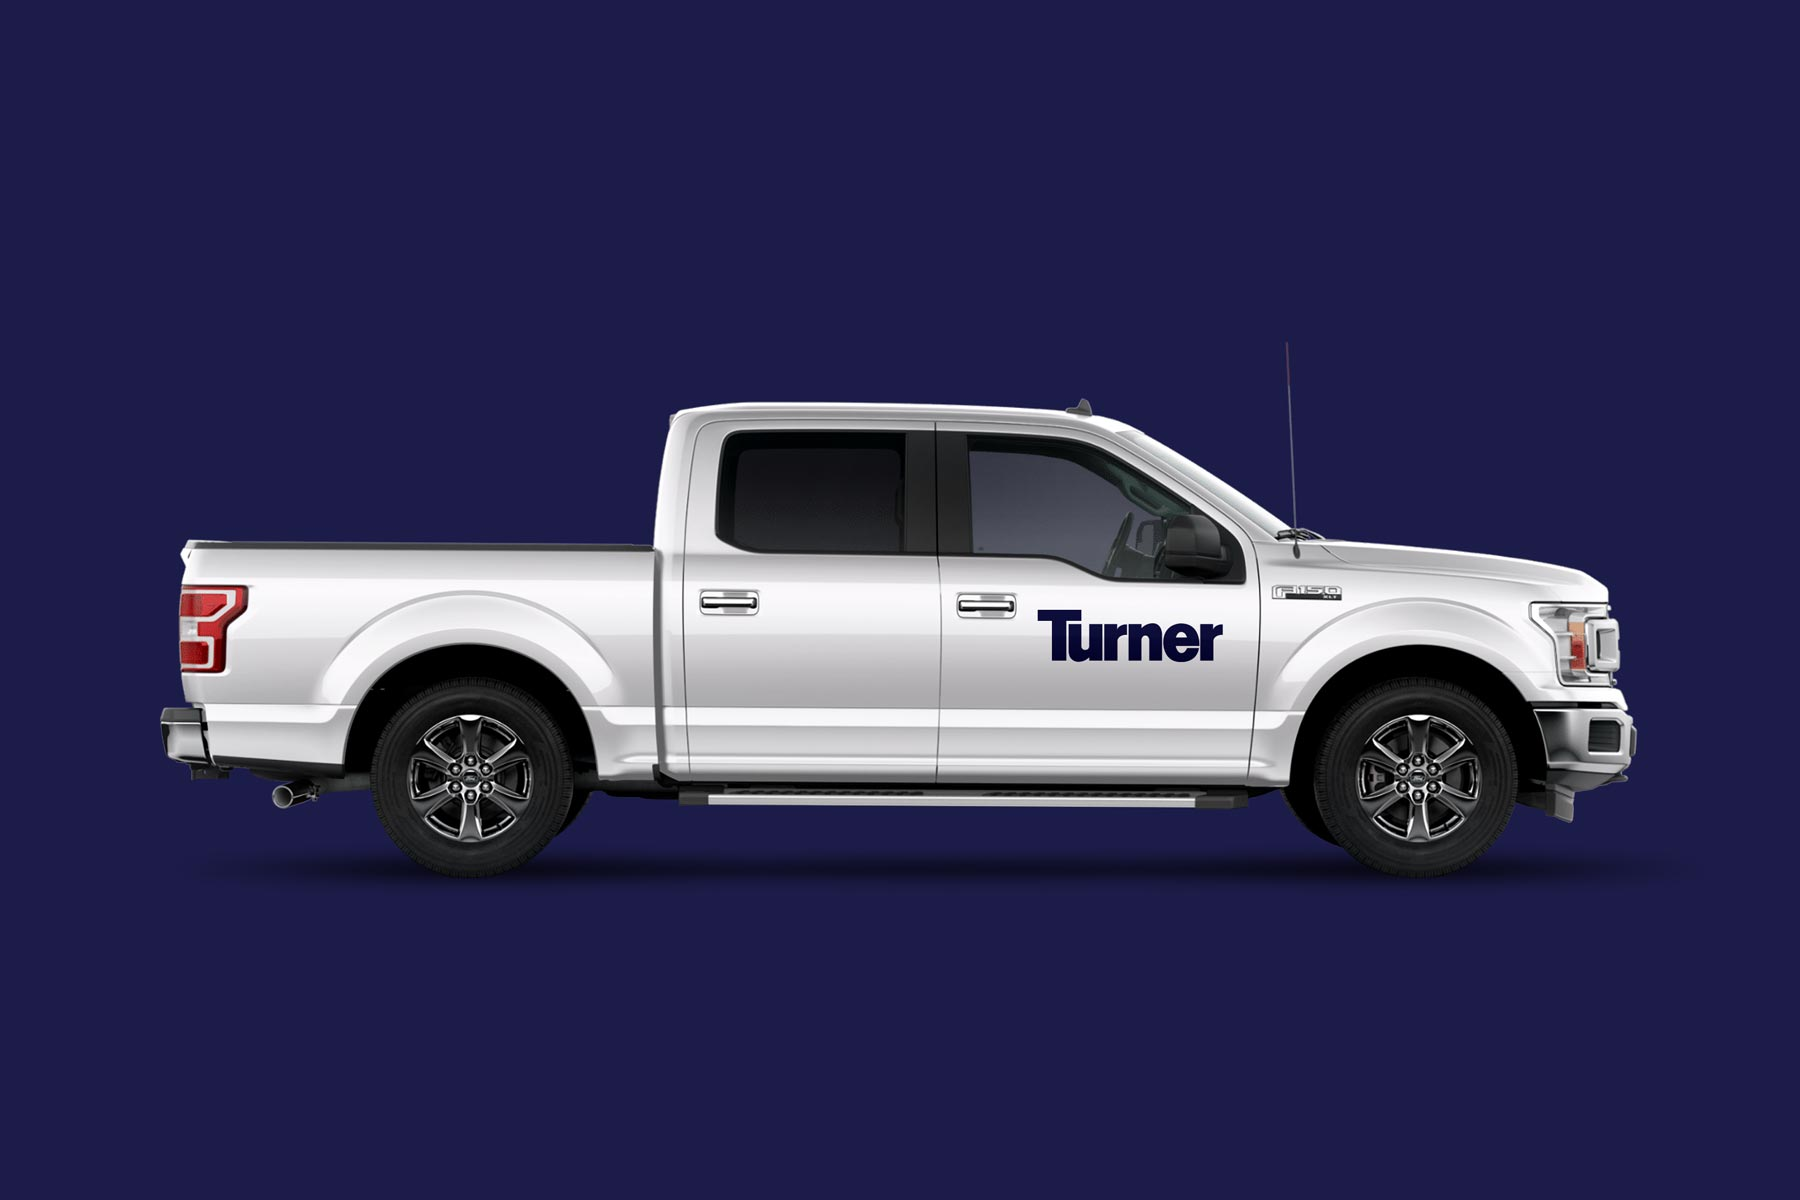 Turner - Construction Company Logo on a Truck